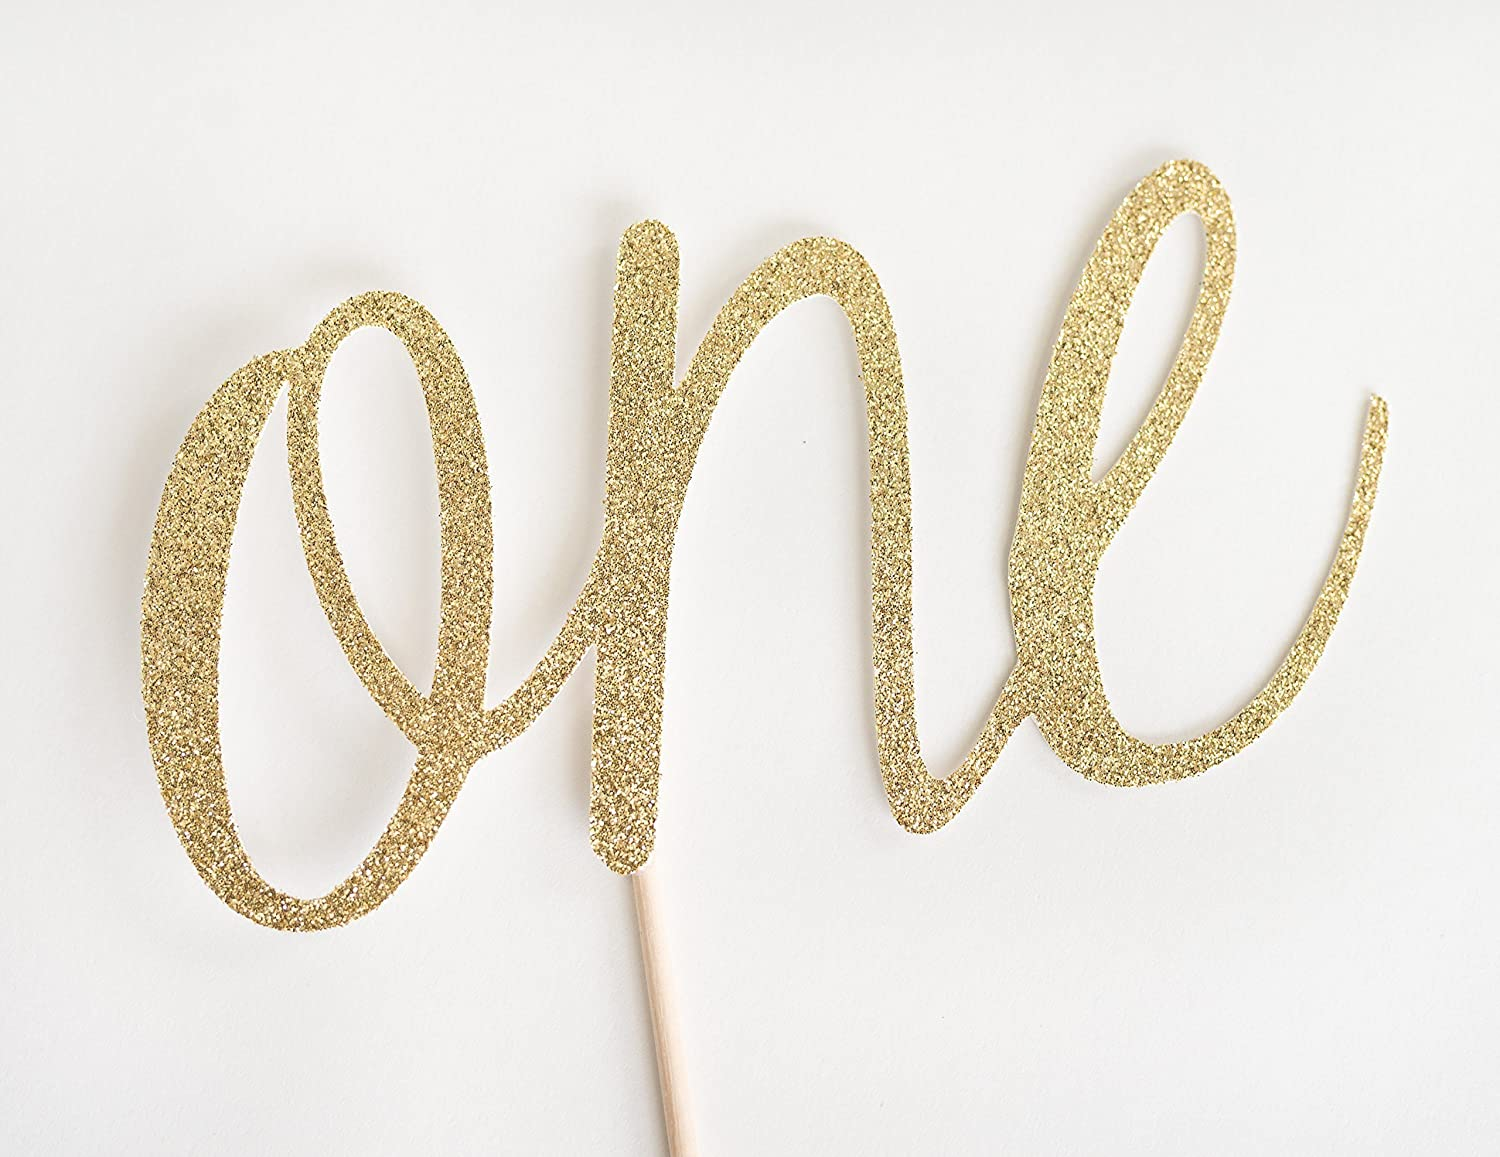 Gold Glitter One Cake Topper, Script First Birthday, 1st, Cake Smash, Party, Gold Glitter, Calligraphy, Cursive, I am one